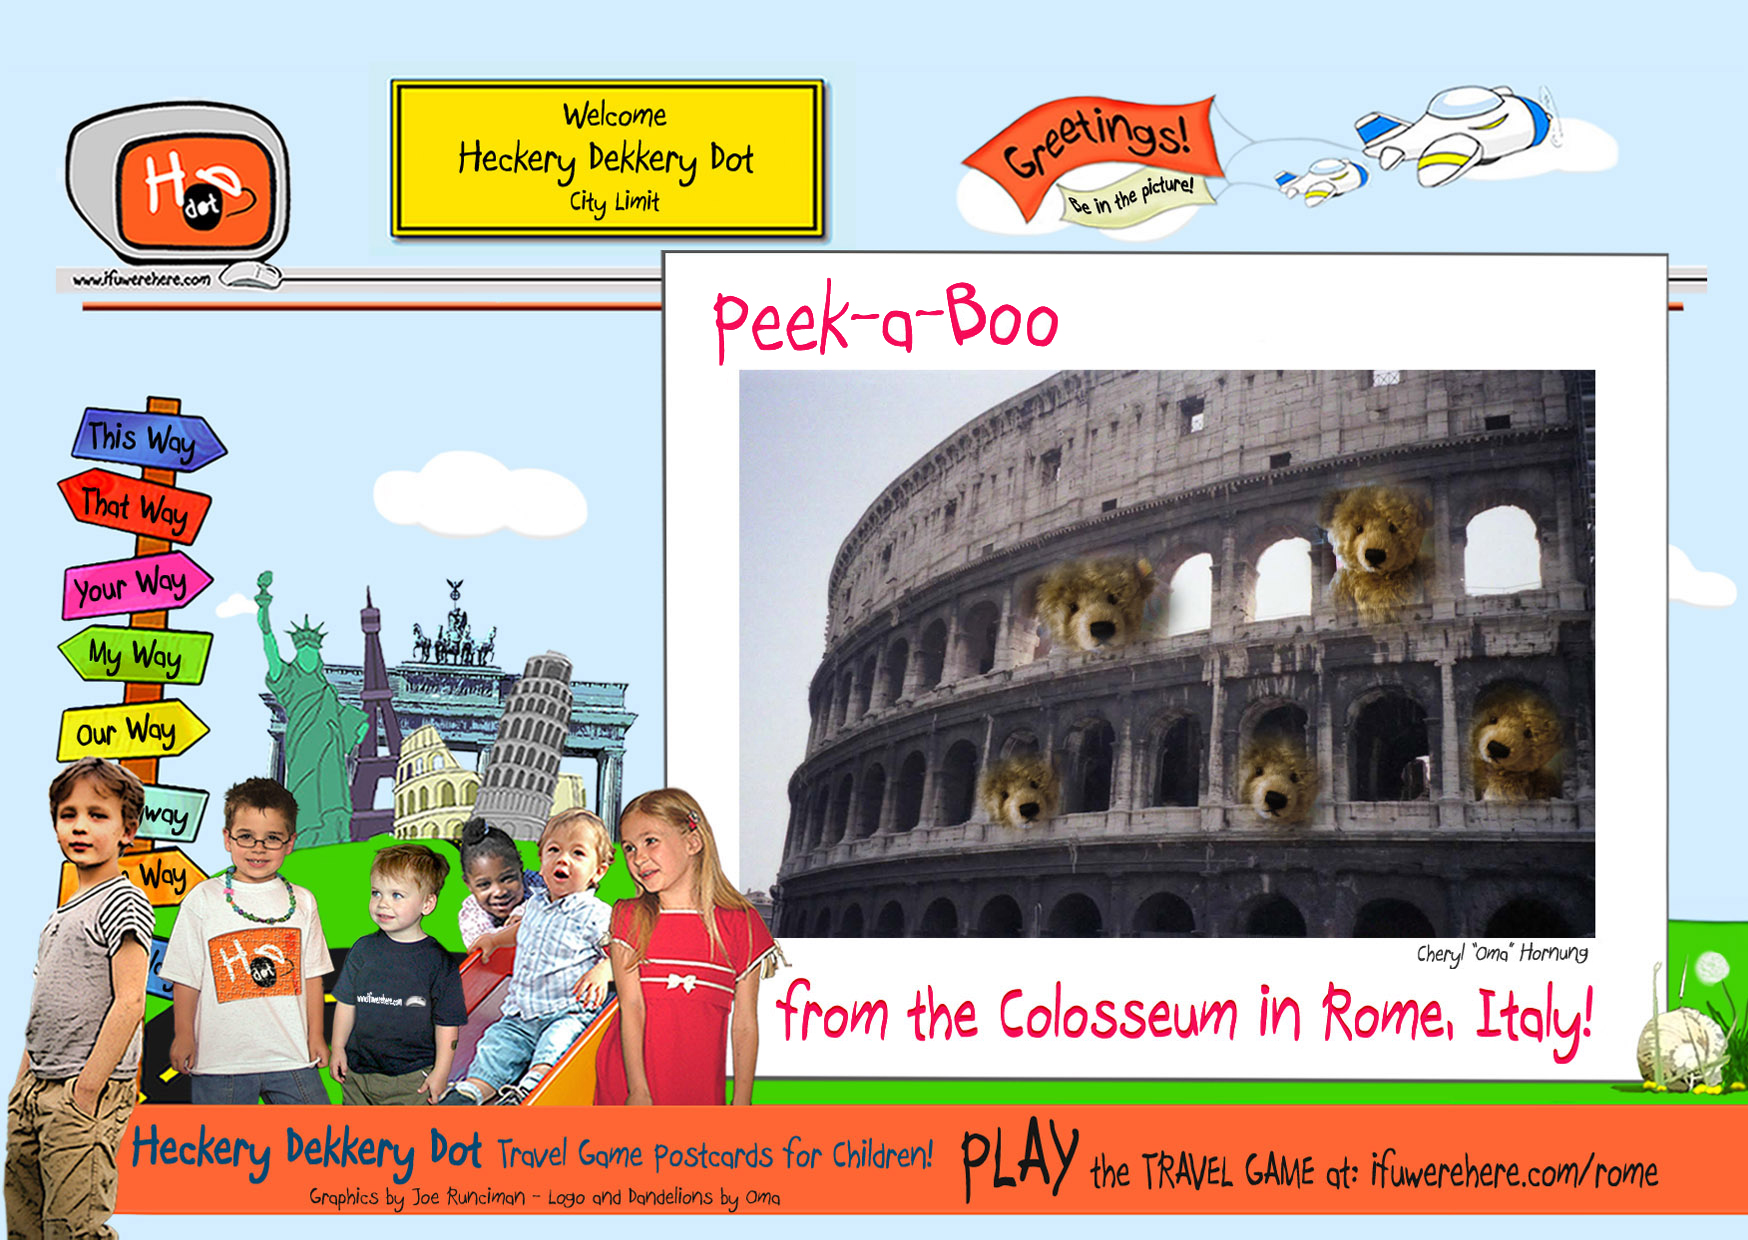 (3) Grab your Teddy Bear, and let's go to the Colosseum!